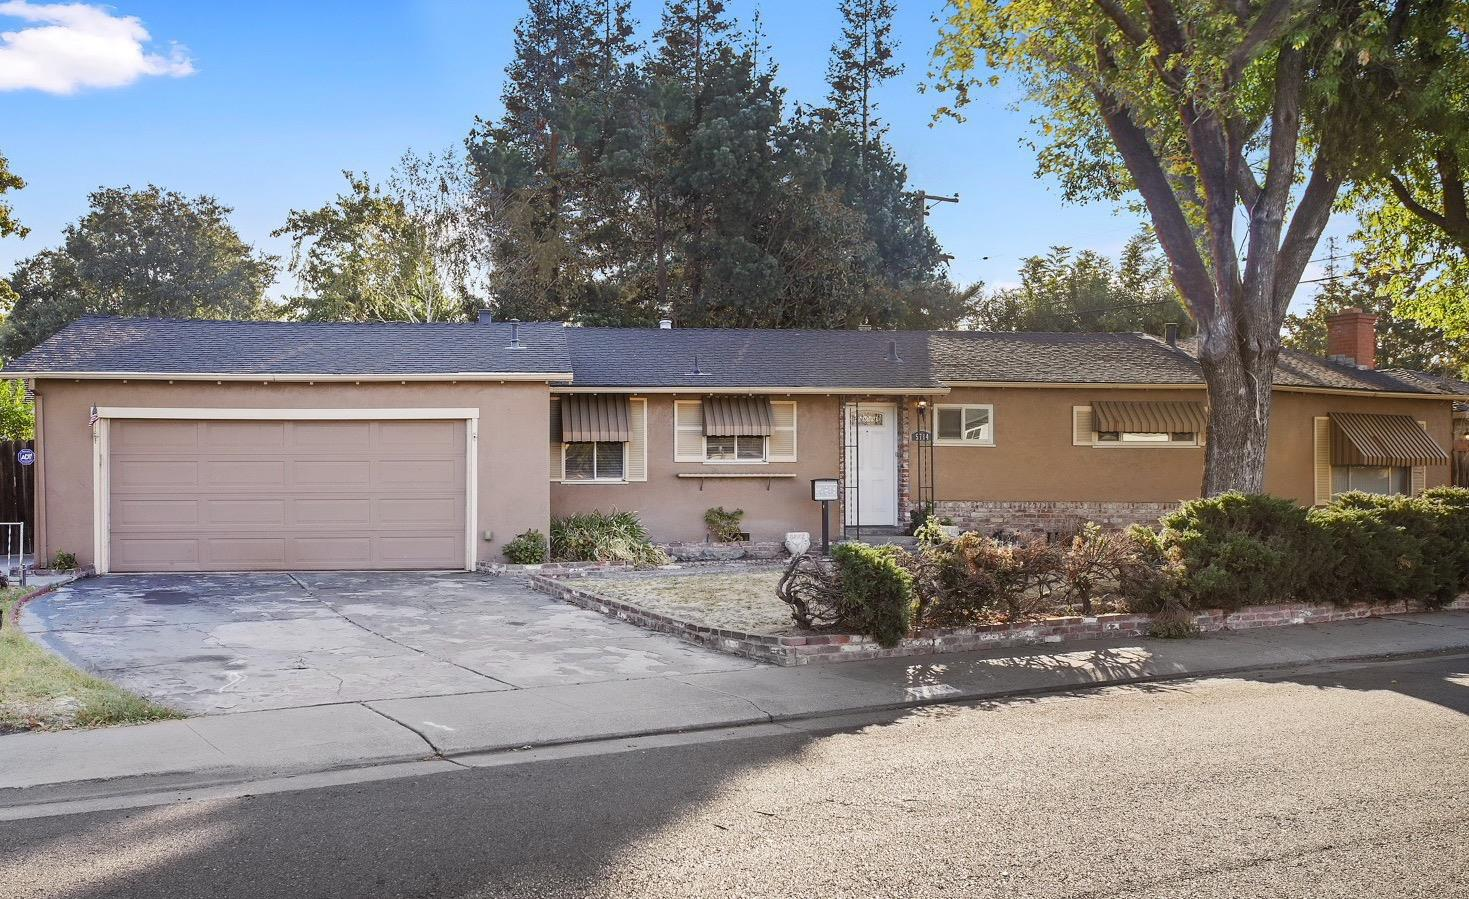 Welcome Home! This home features 4 bedrooms and 2 baths, a newer HVAC system and sits on a corner lot. It is also located in a well established neighborhood of Sherwood Manor. There is so much potential for this home. This one won't last long!